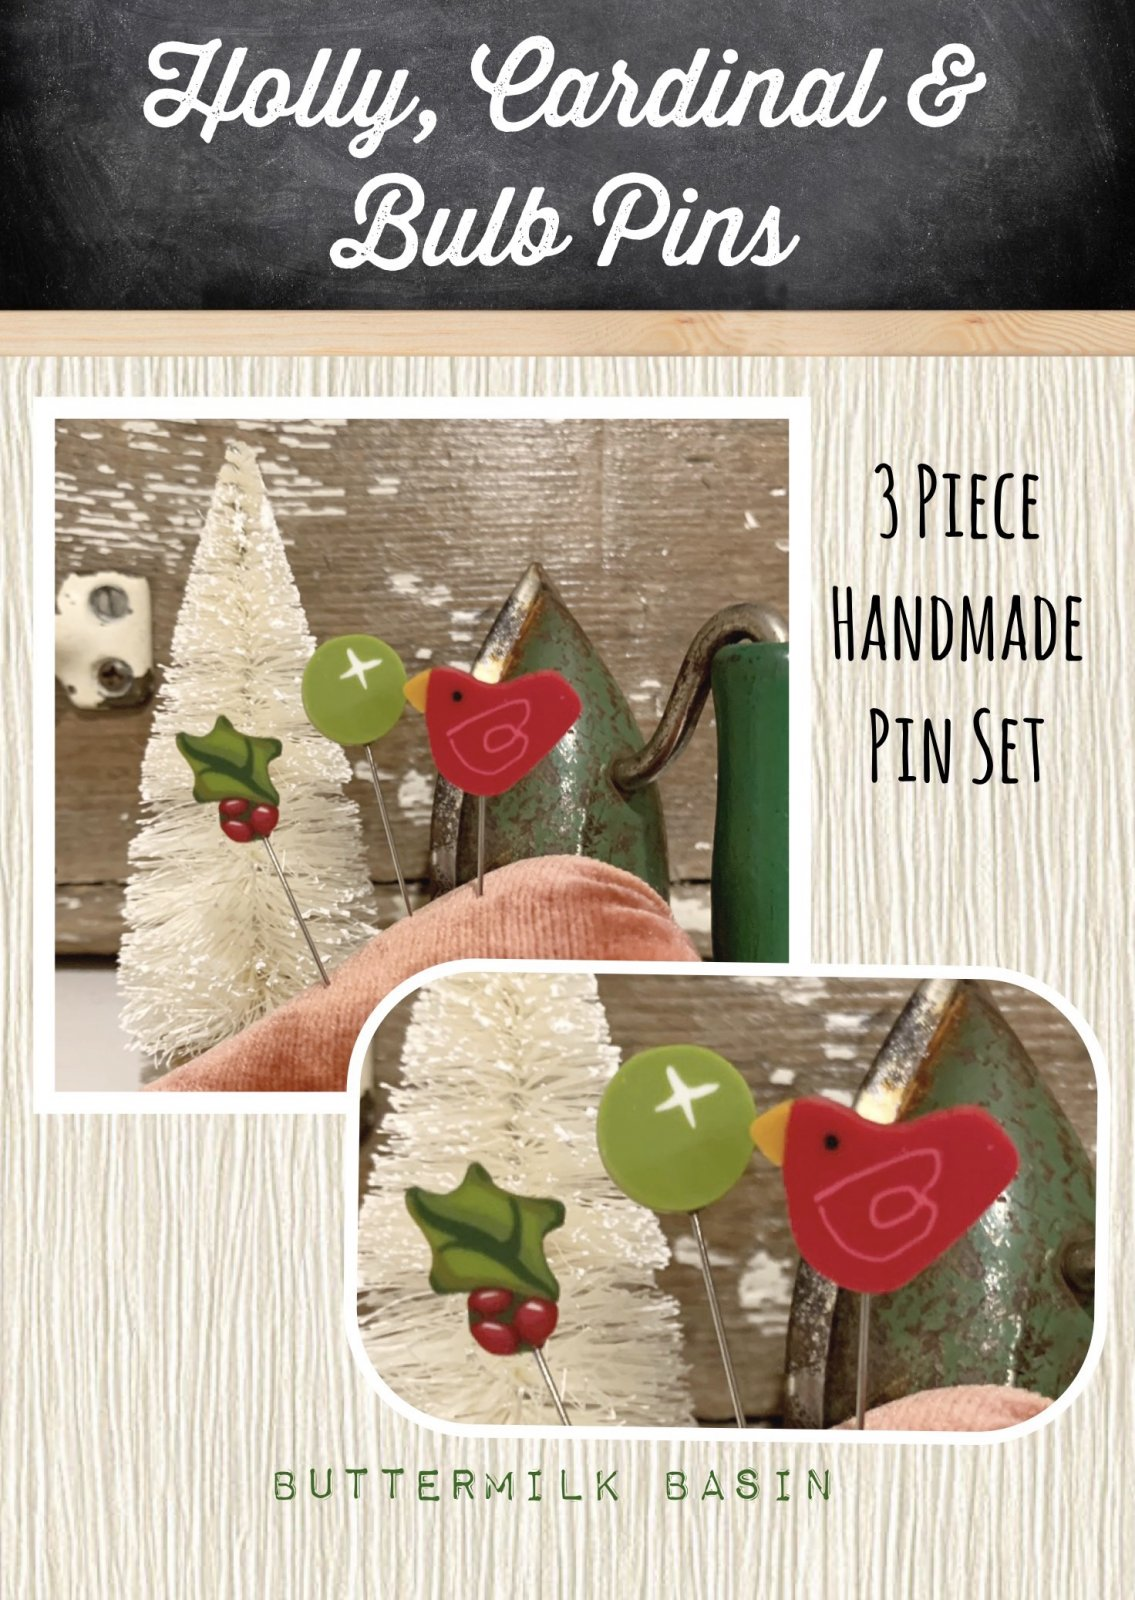 Holly, Cardinal & Bulb Pins